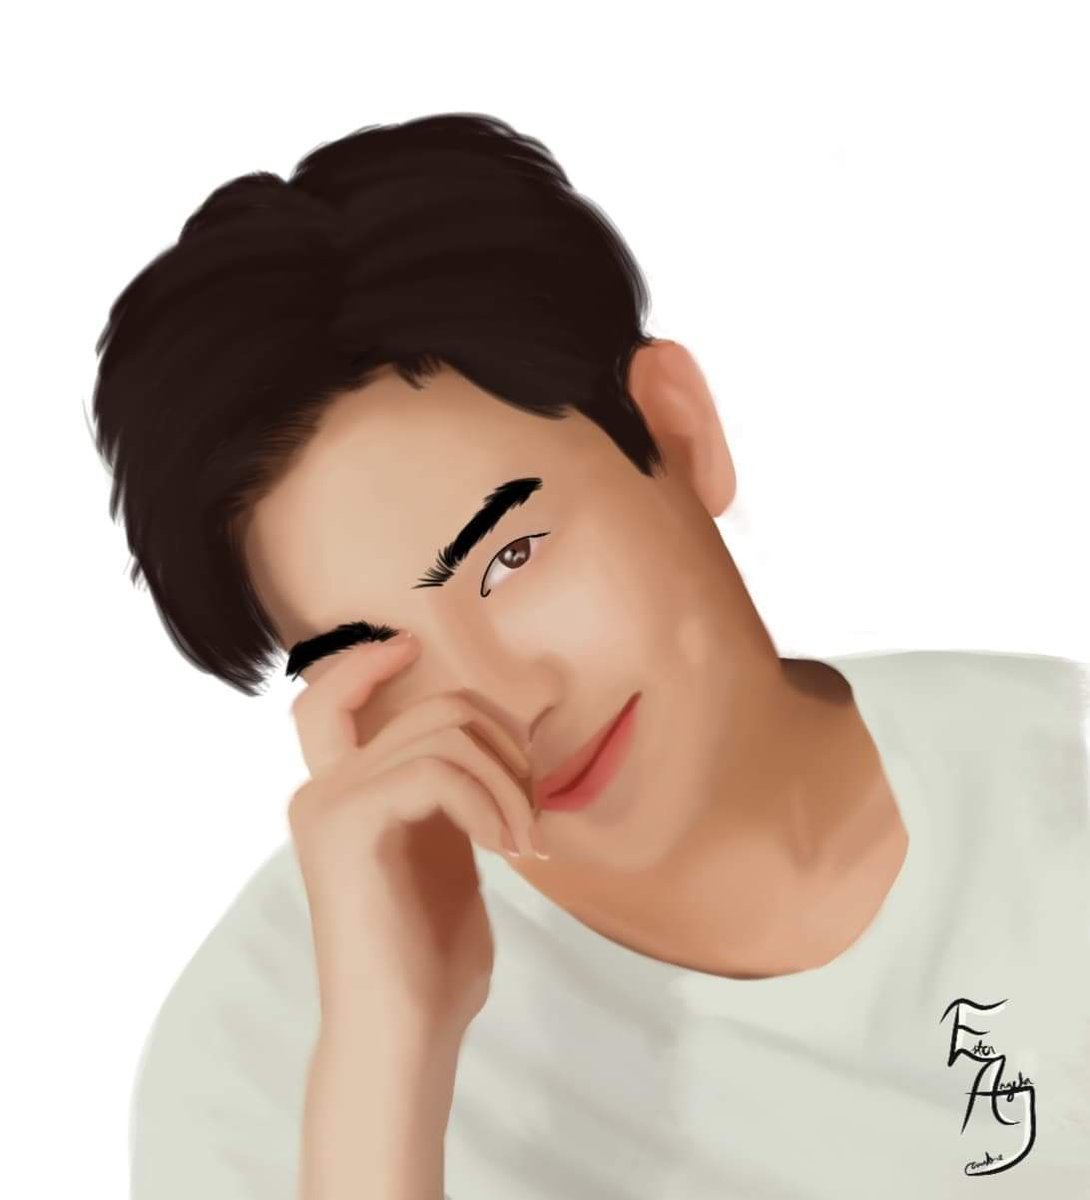 I asked my friend @EsterAngelaJ1 to make this beautiful digital art of @tommysittichok since I am one of his so-called die hard fans. I really hope he'll see this pic.twitter.com/afPtZgXhUt